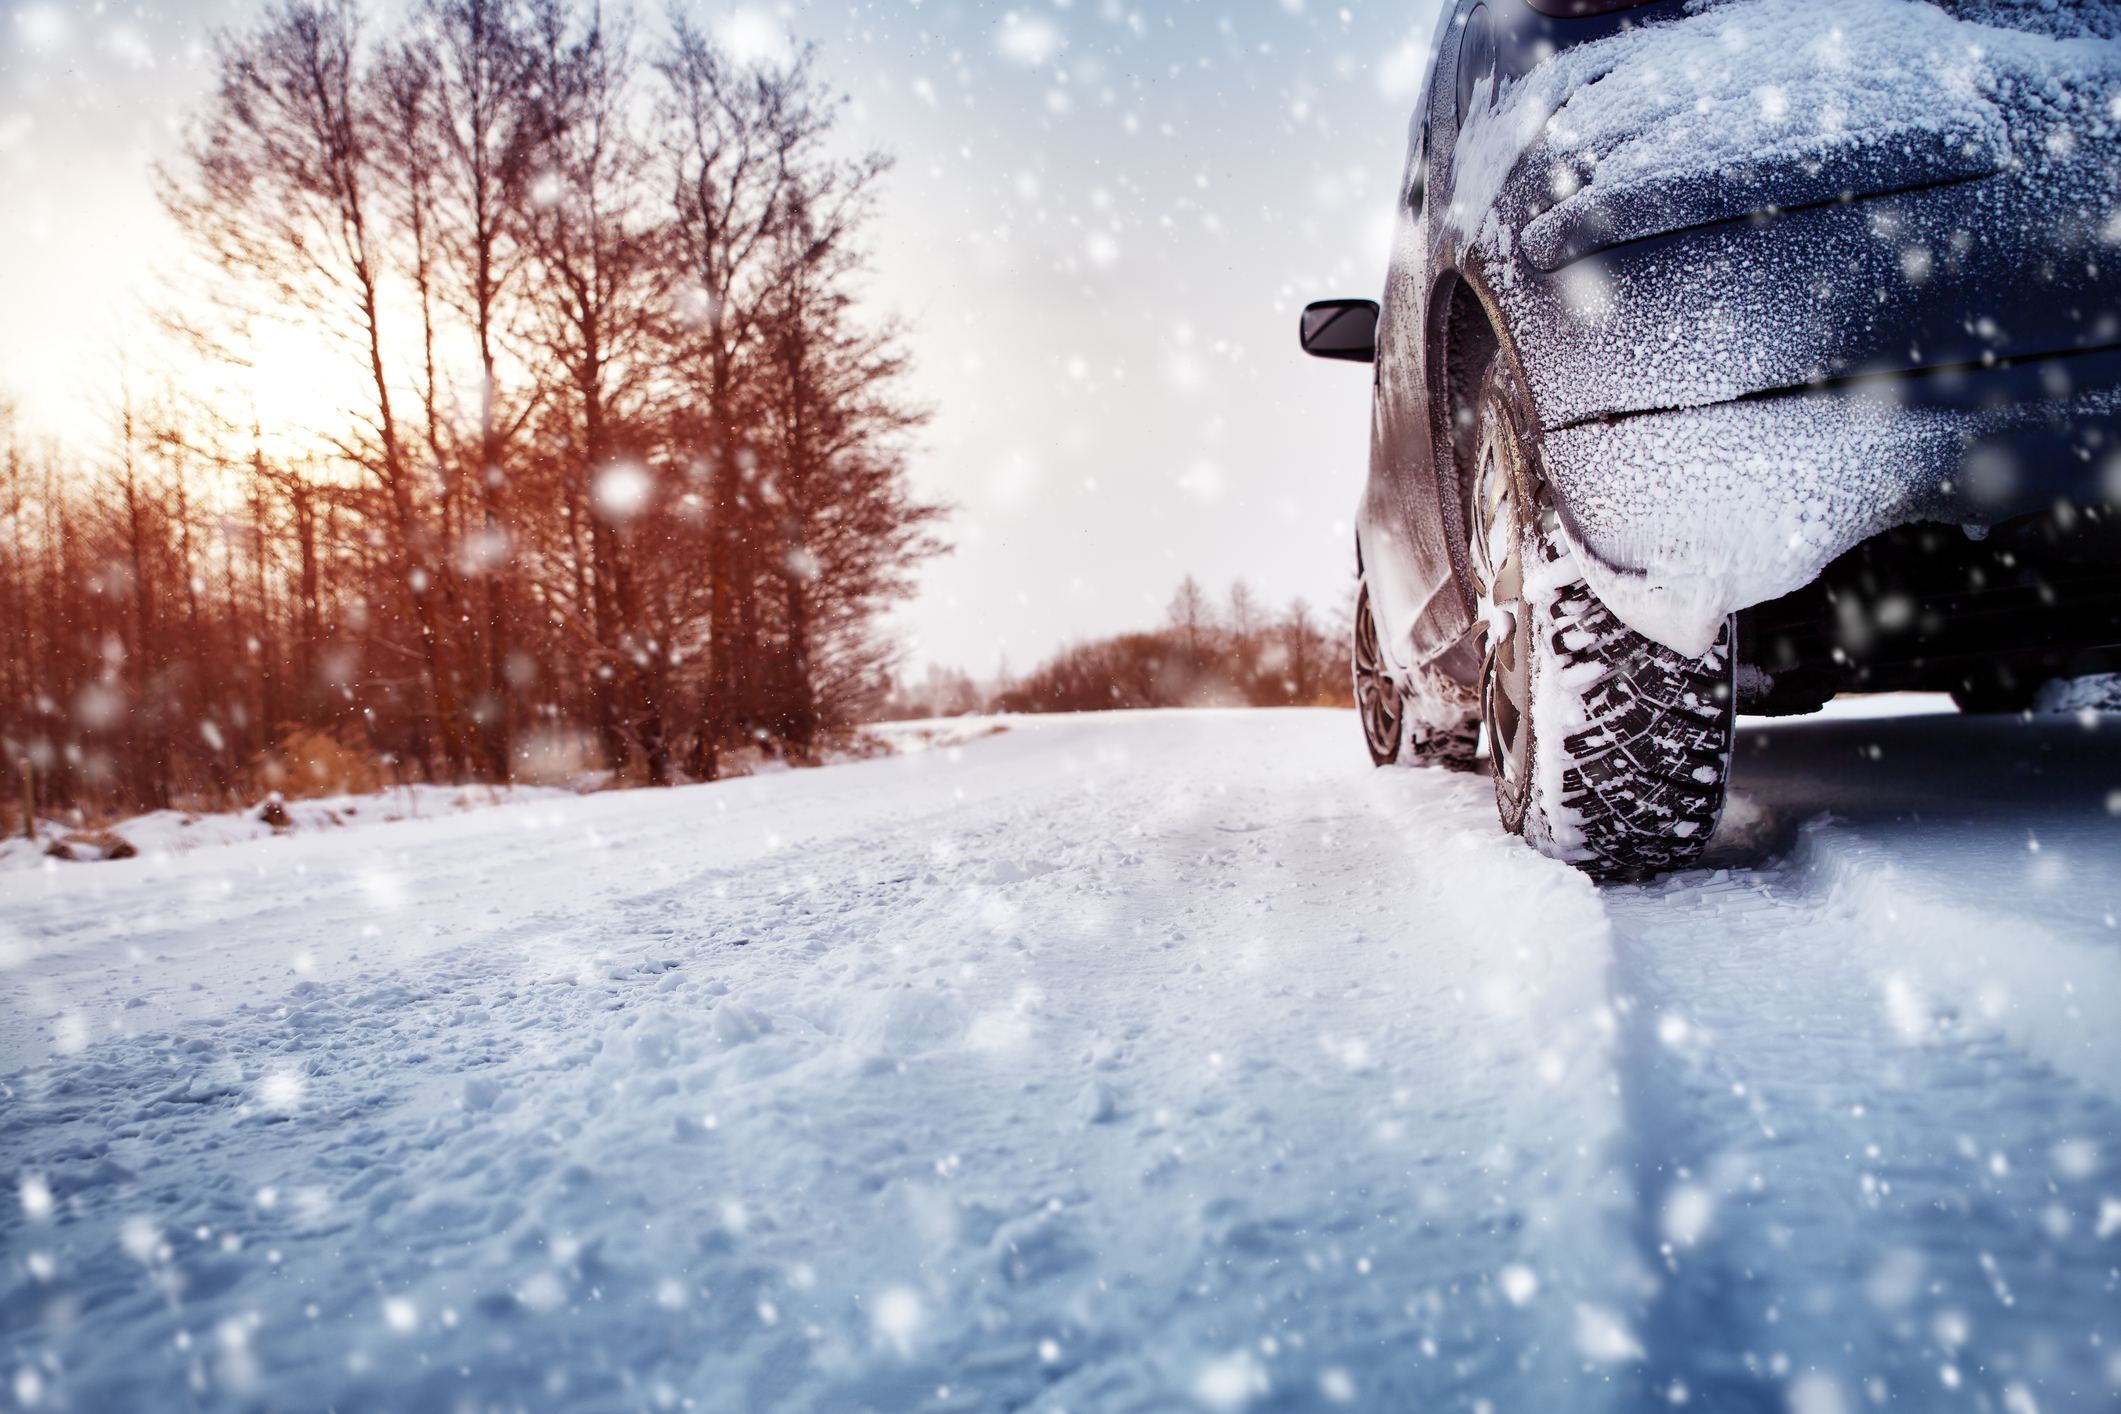 Slushy Conditions Ahead: Get Your Tires Ready for Winter Driving